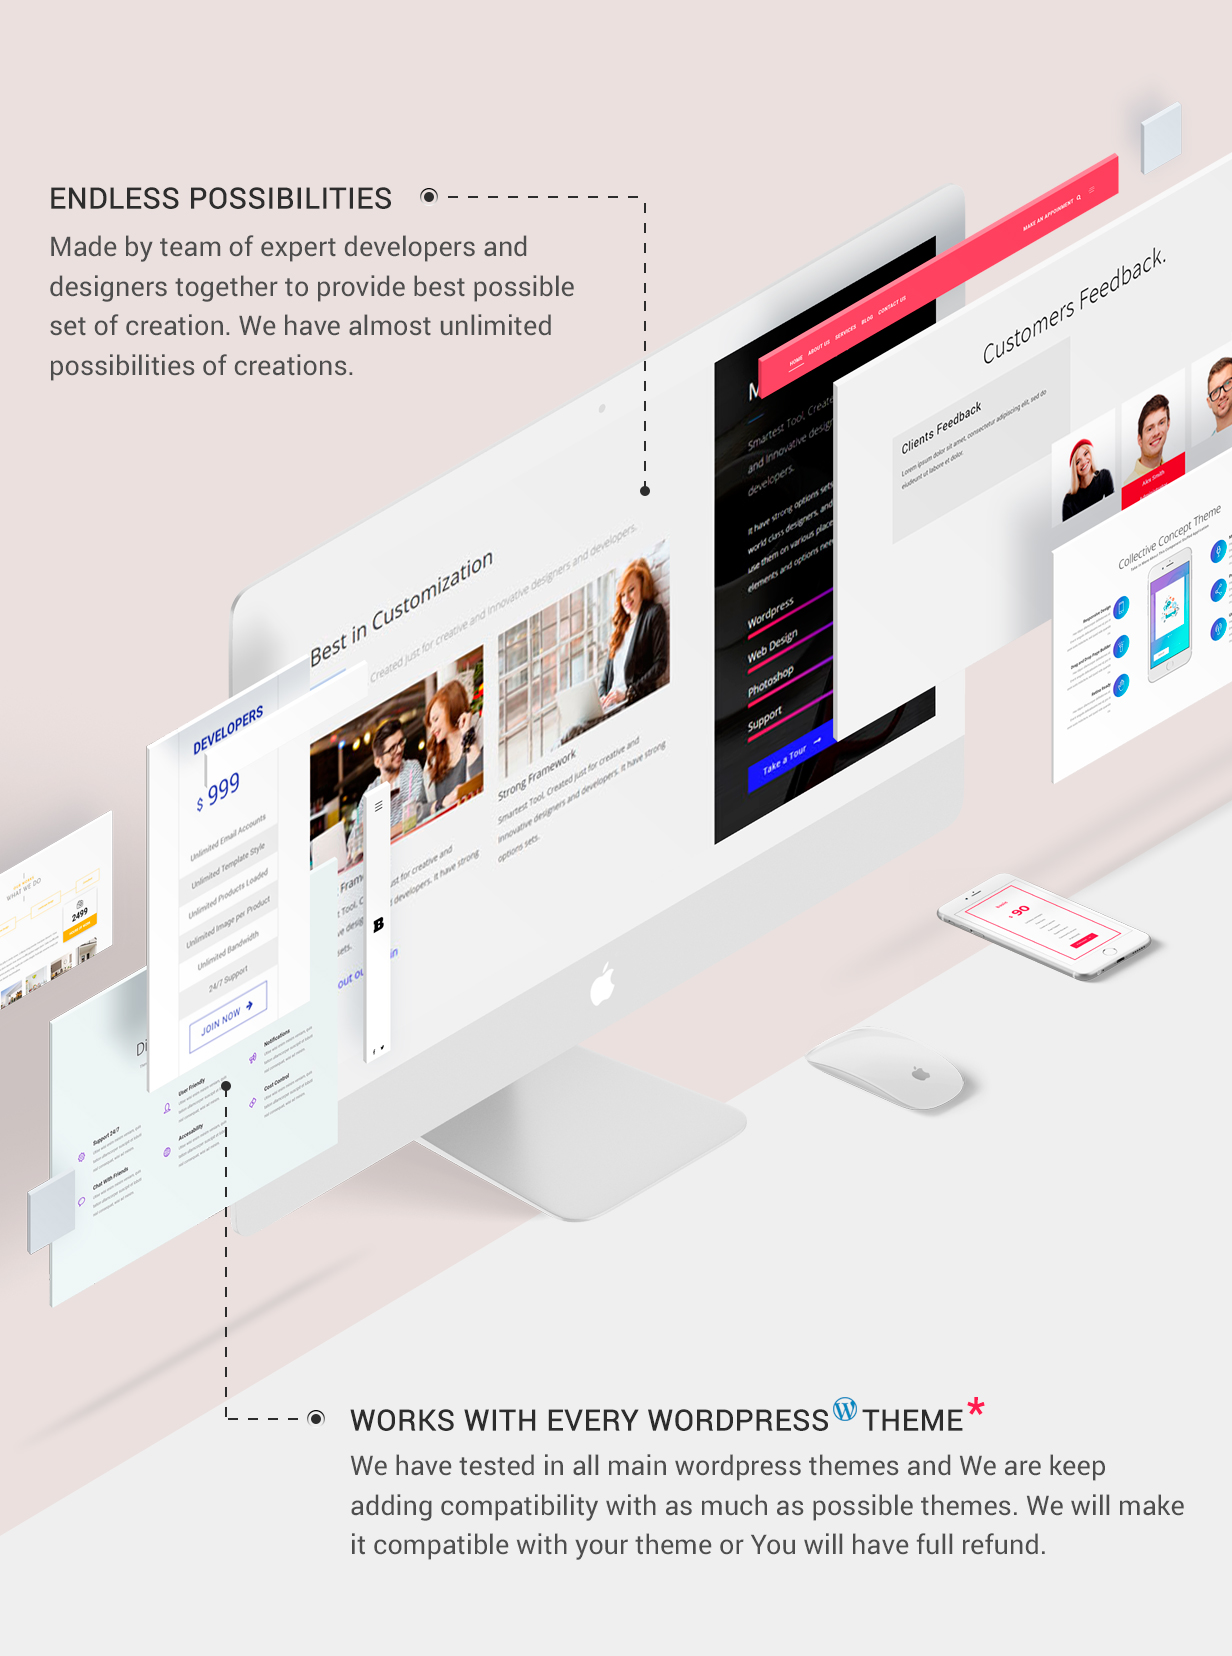 ThePlus Addons for WPBakery Page Builder (formerly Visual Composer) | Prosyscom Tech 25